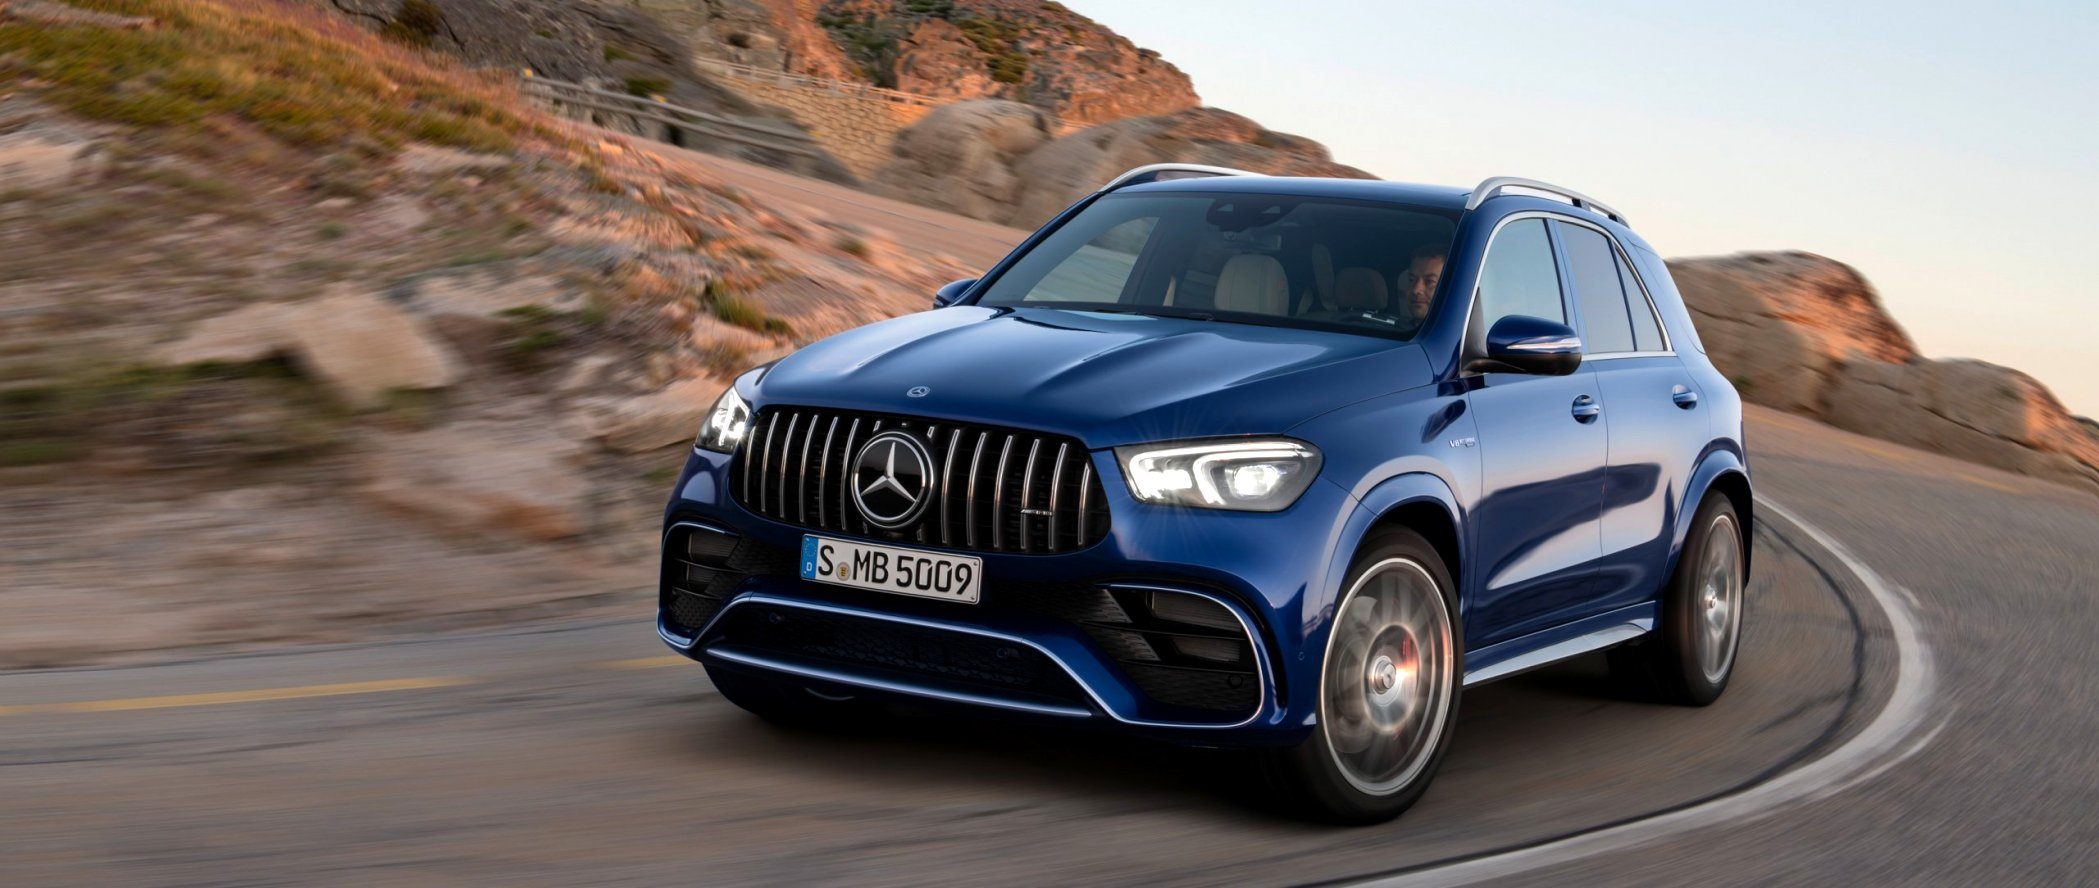 mercedes gle 2020 release date Price